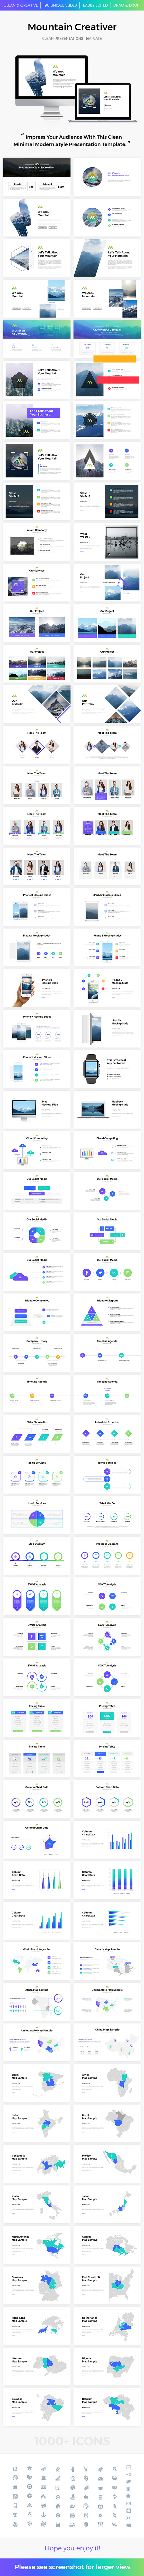 GraphicRiver Mountain Creativer Powerpoint Template 20996393